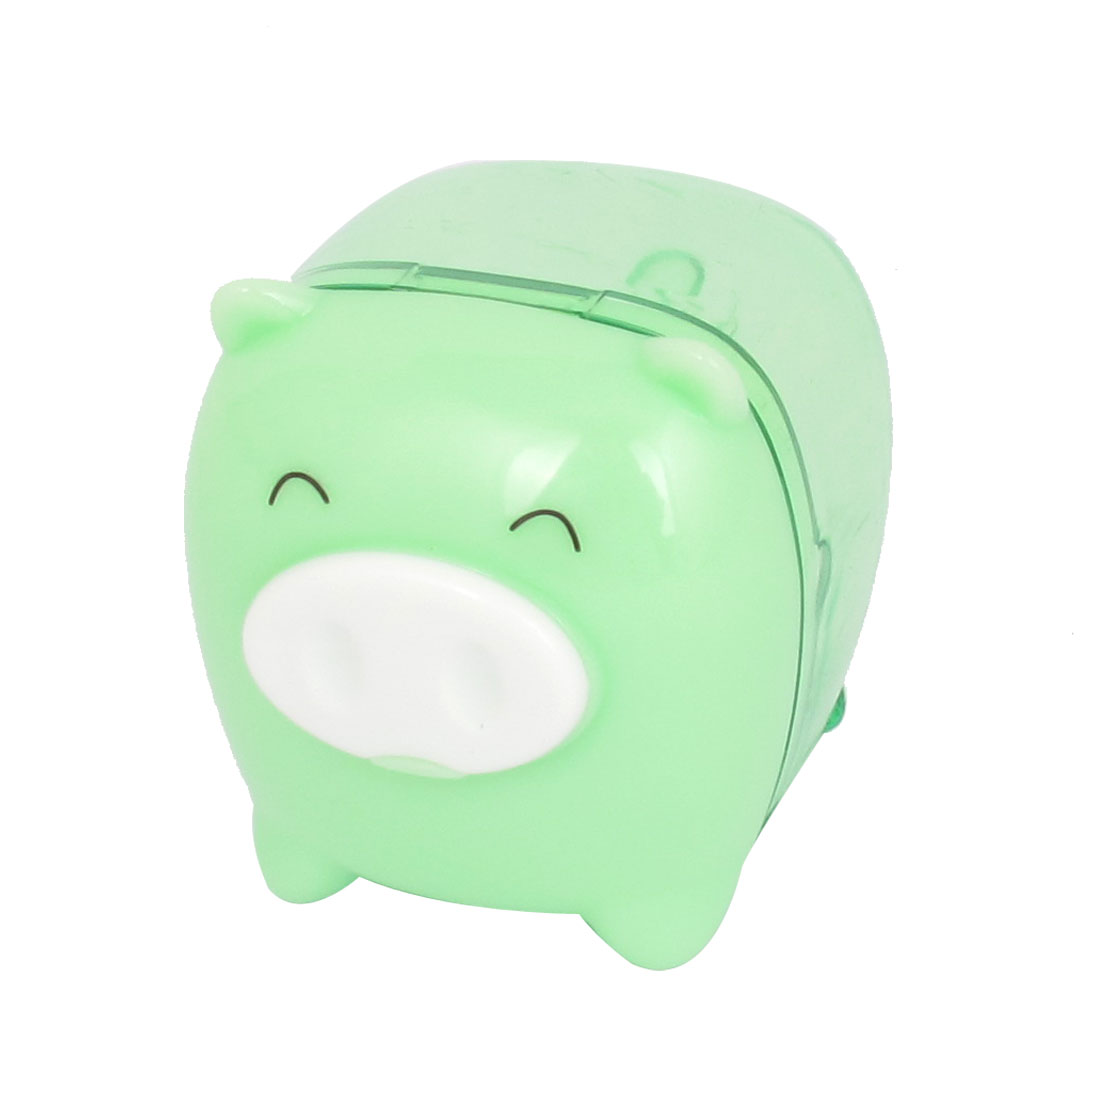 Green Pig Design Plastic Housing Pencil Sharpener Tool for Students